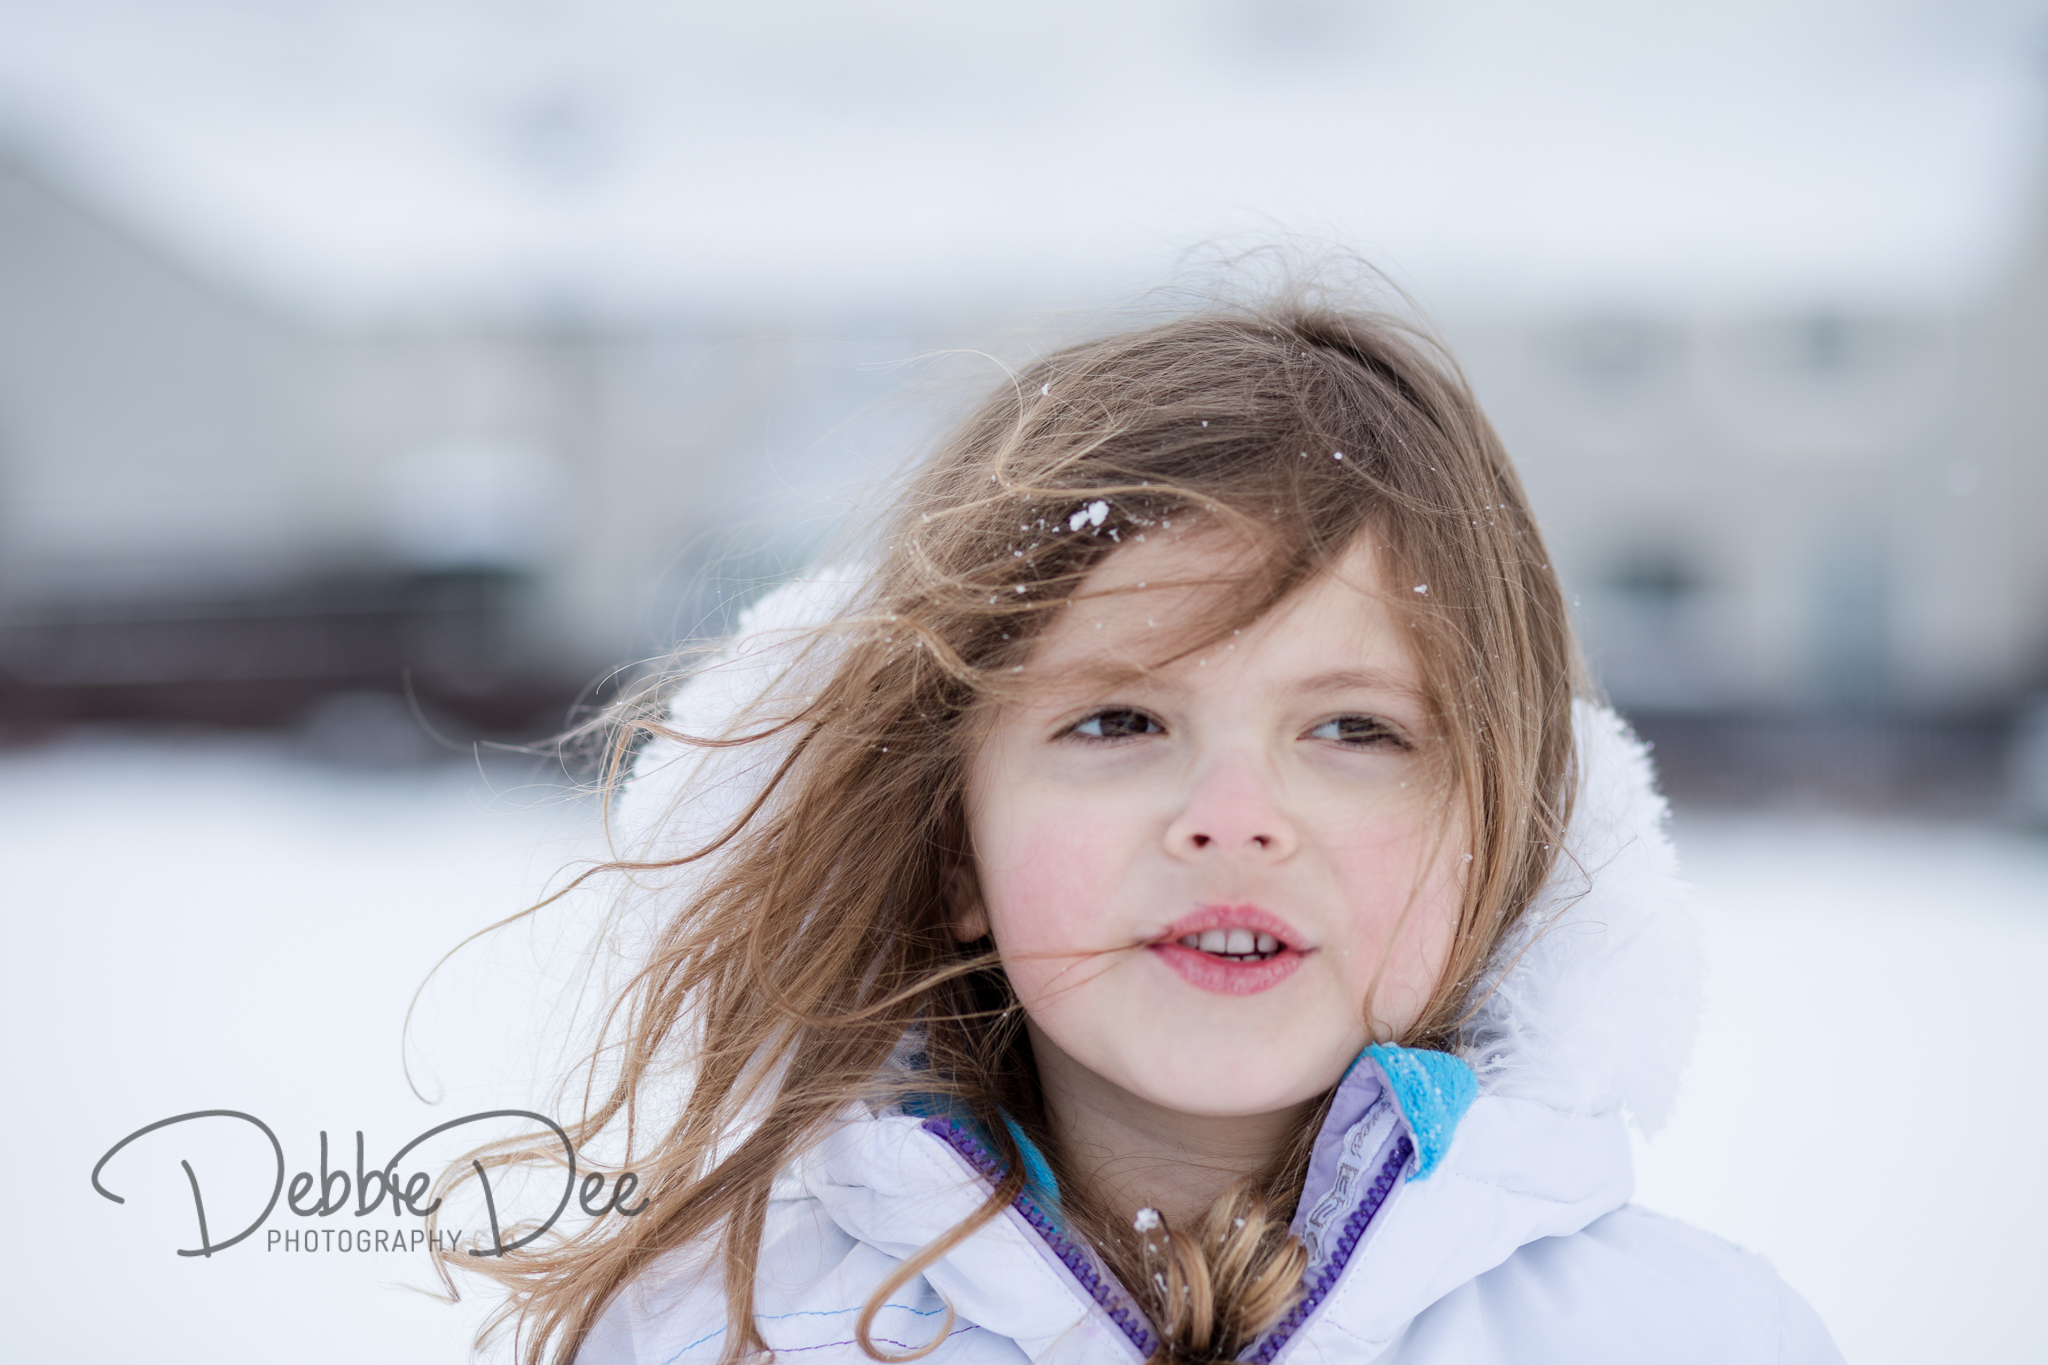 Girl with hair blowing in the snow